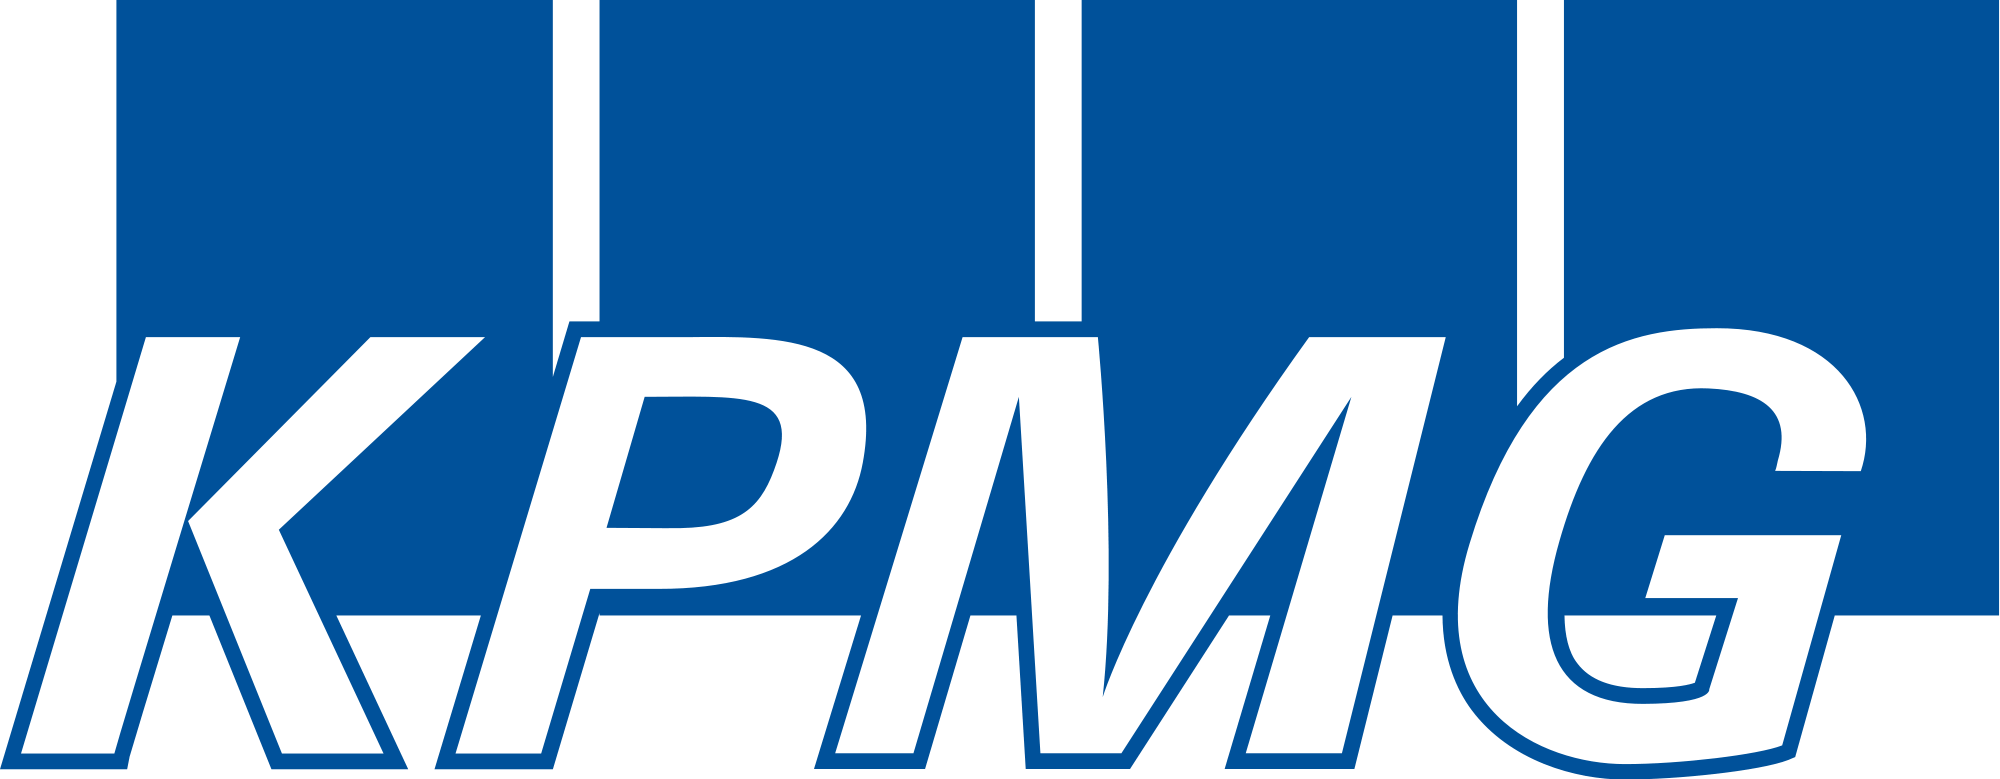 Kpmg careers download free clipart with a transparent.